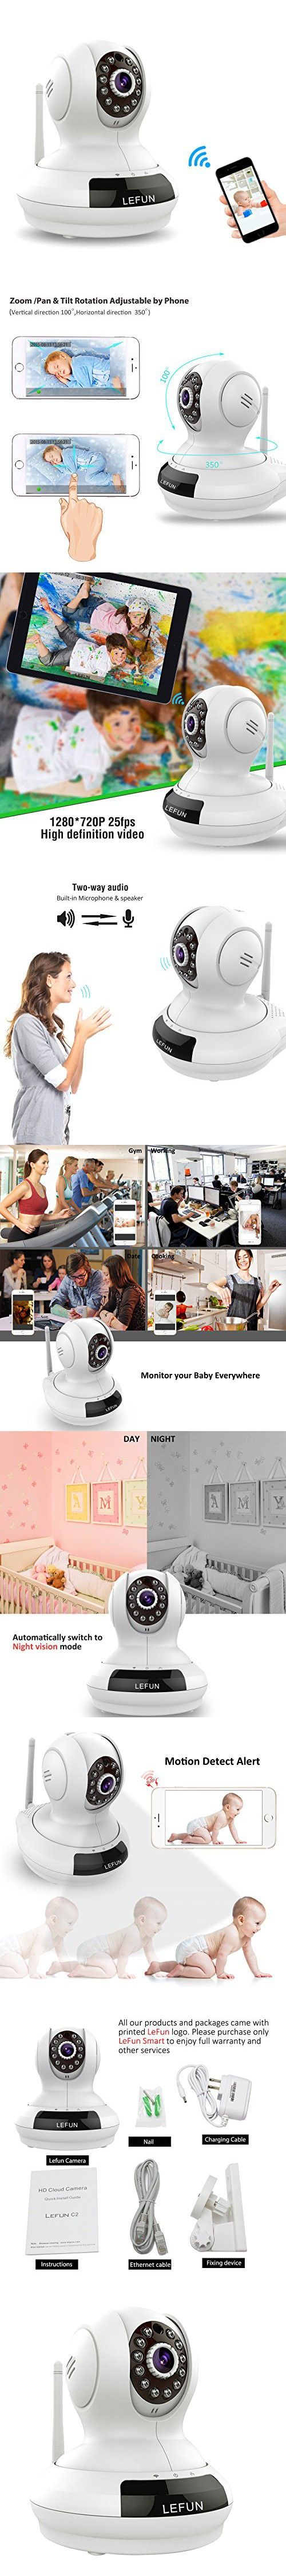 LeFun Wireless Camera, Baby Monitor WiFi IP Surveillance Camera HD 720P Nanny Cam Video Recording Play/Plug Pan Tilt Remote Motion Detect Alert with Two-Way Audio and Infrared Night Vision